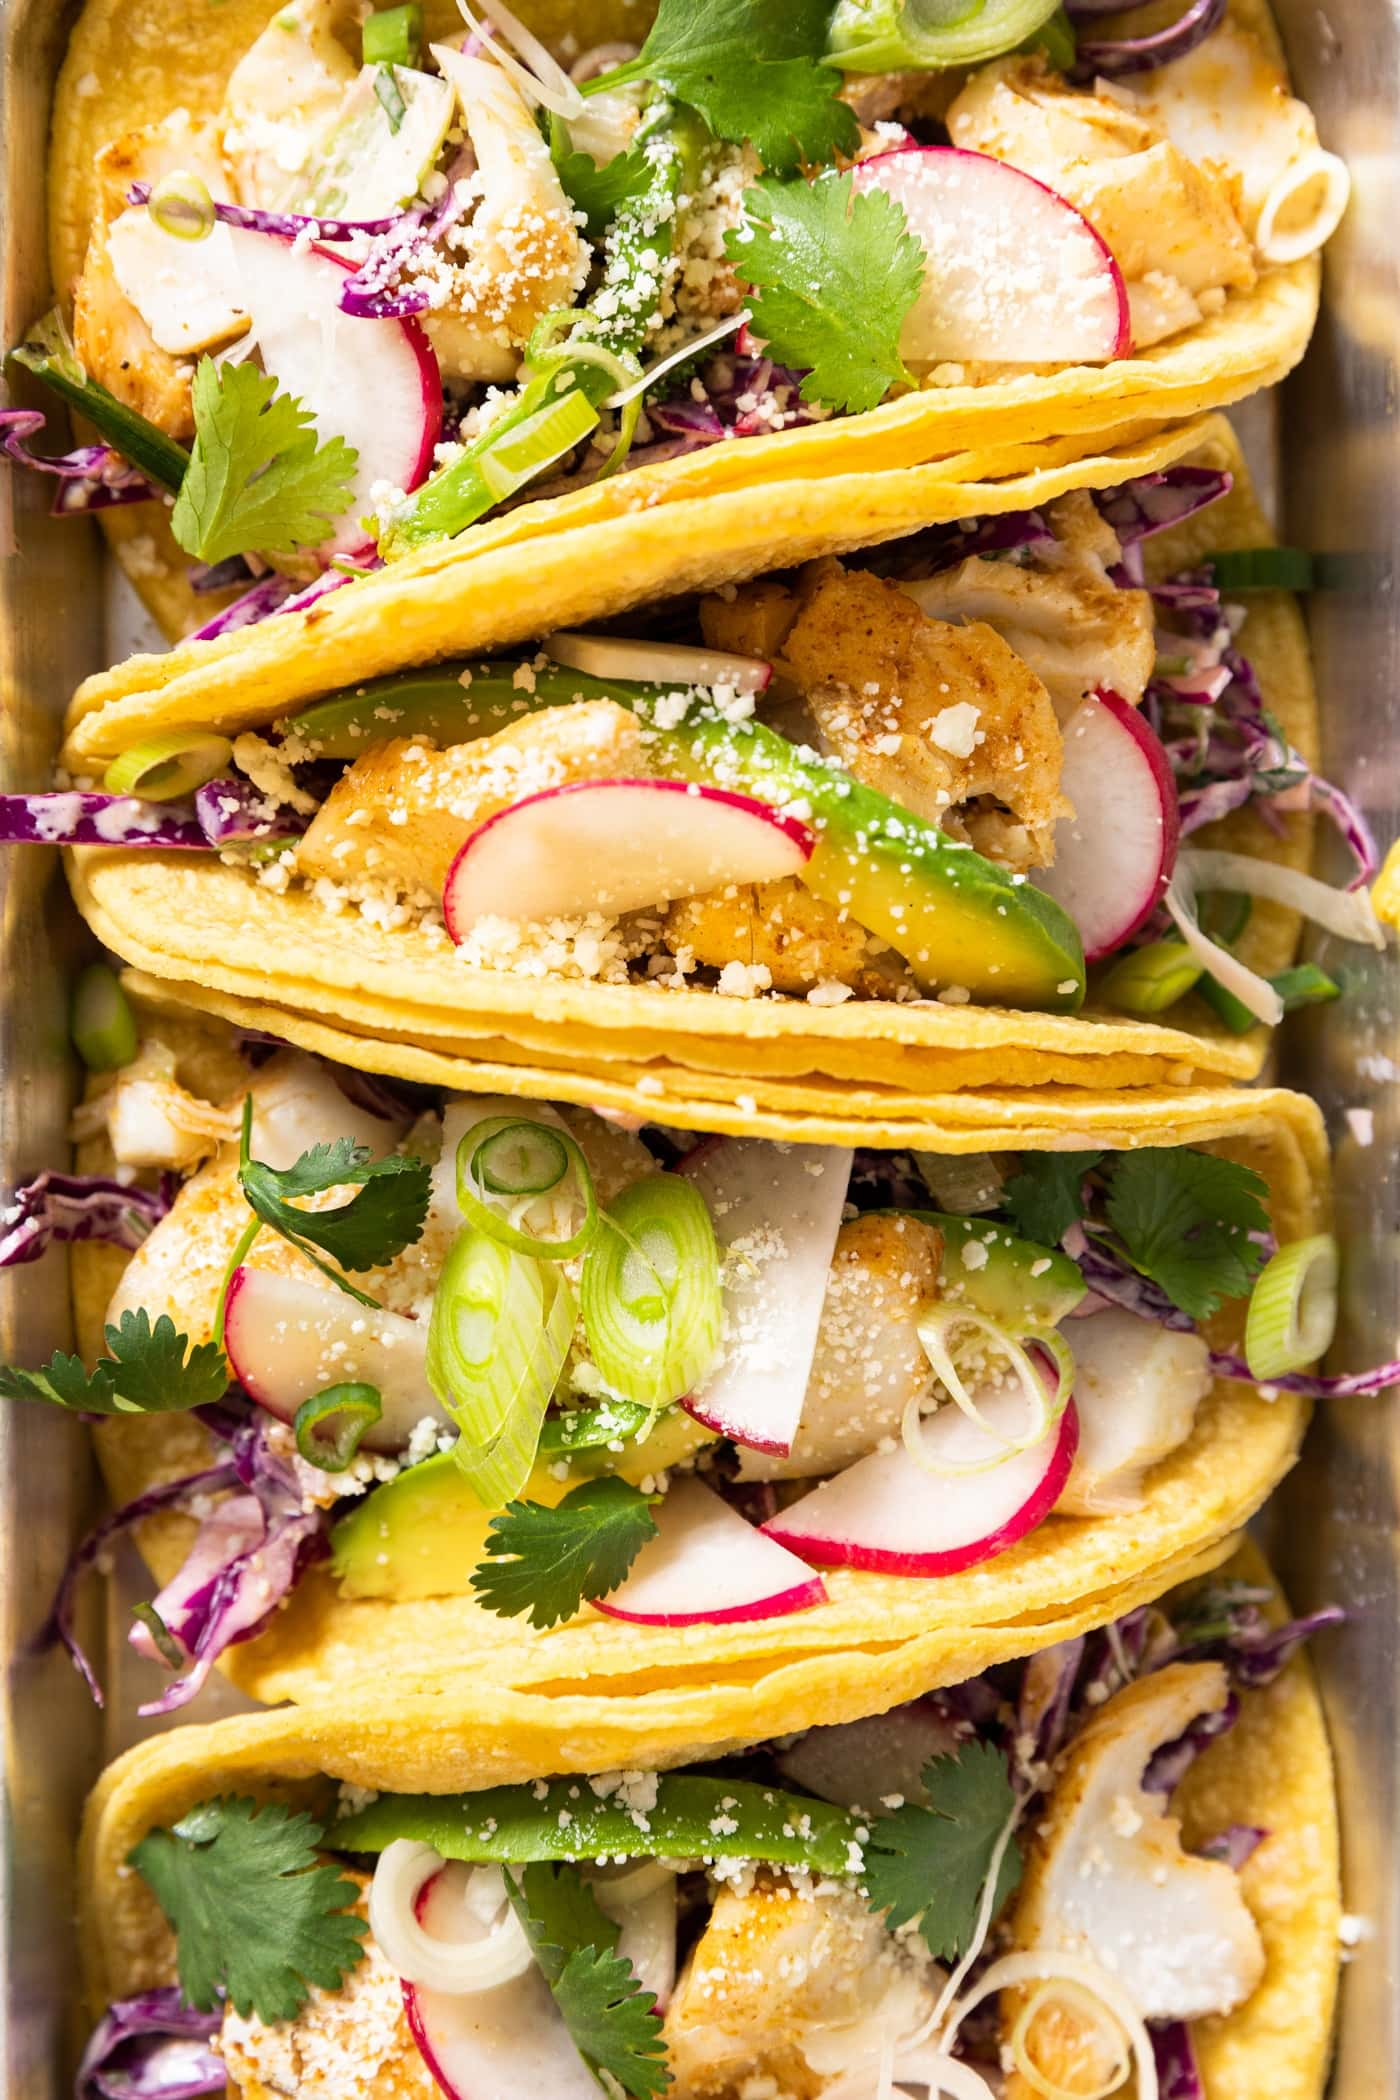 Close up top down view of yellow colored tortillas filled with cod fish and topped with radish and coleslaw